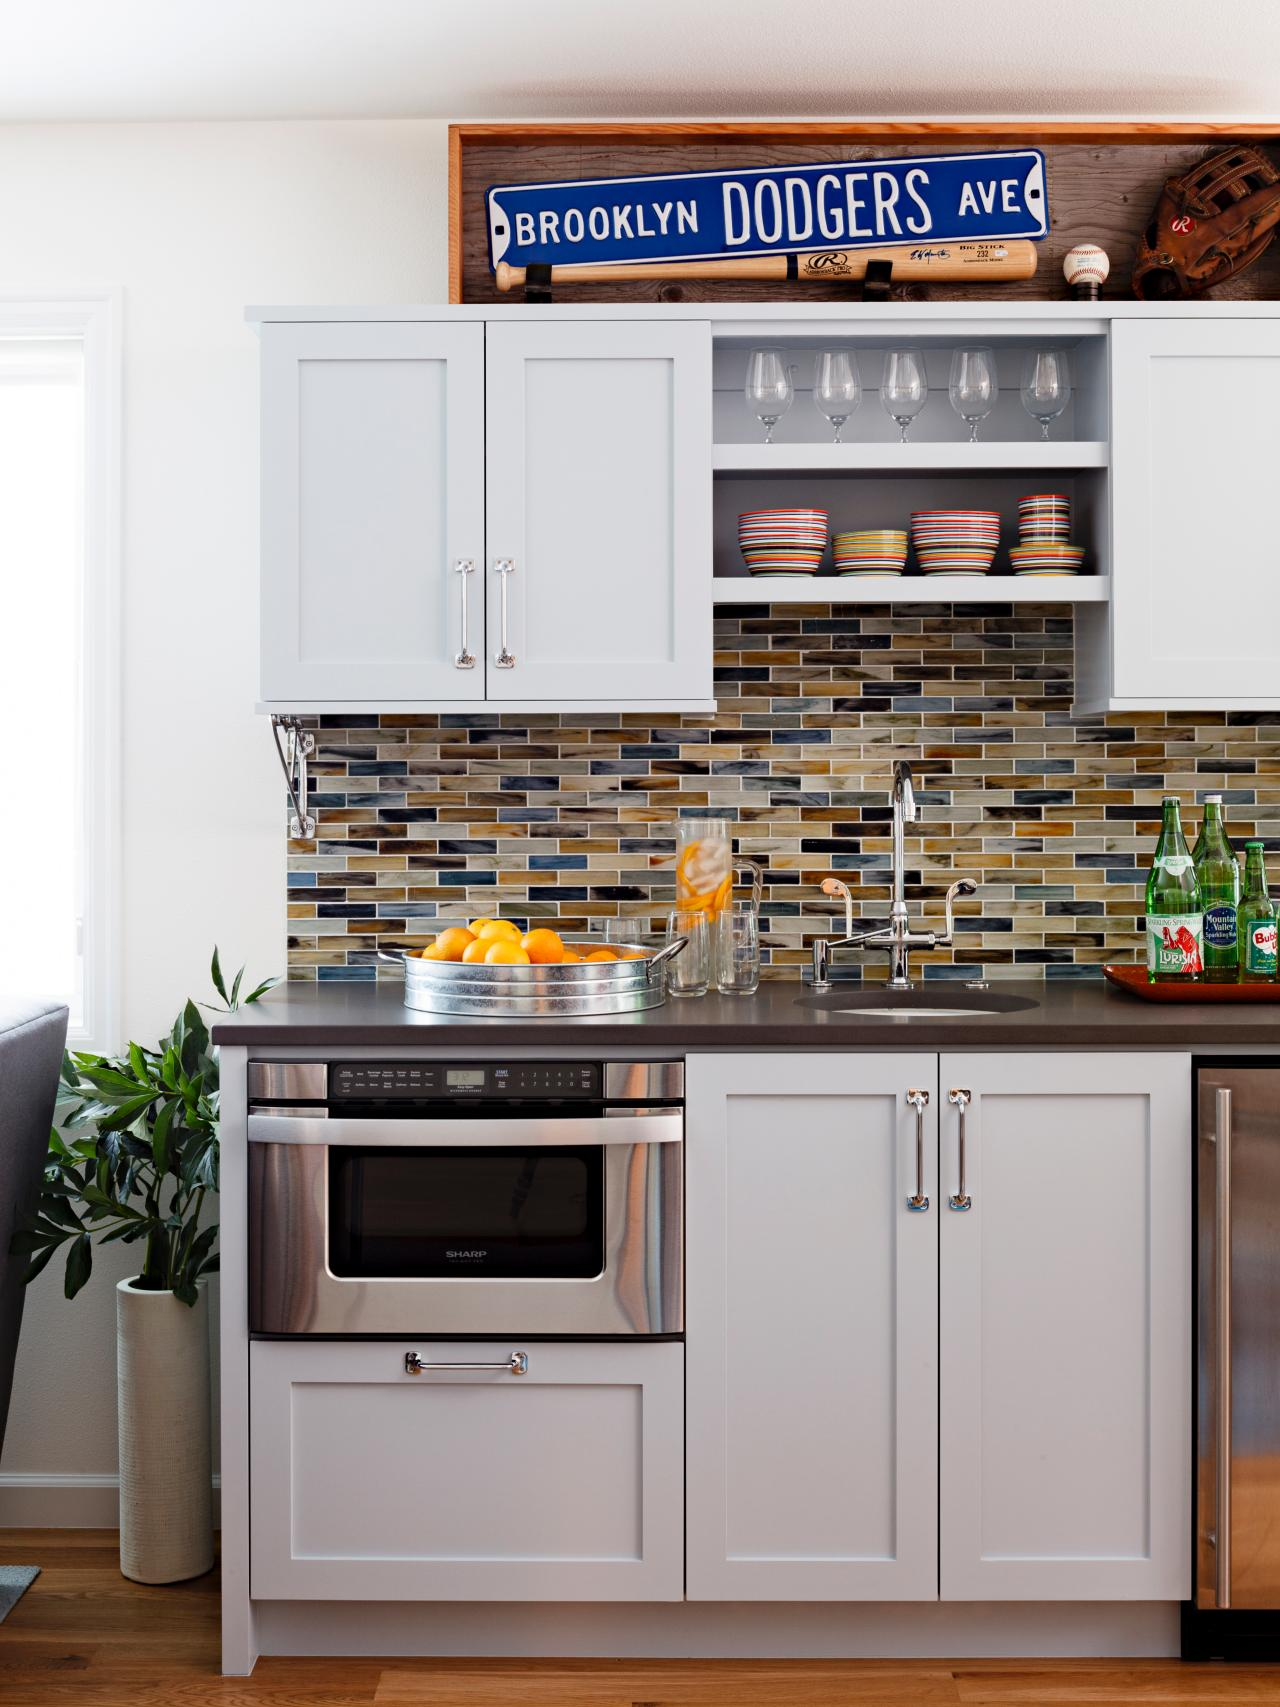 Bon Small Tile Backsplash Design Idea